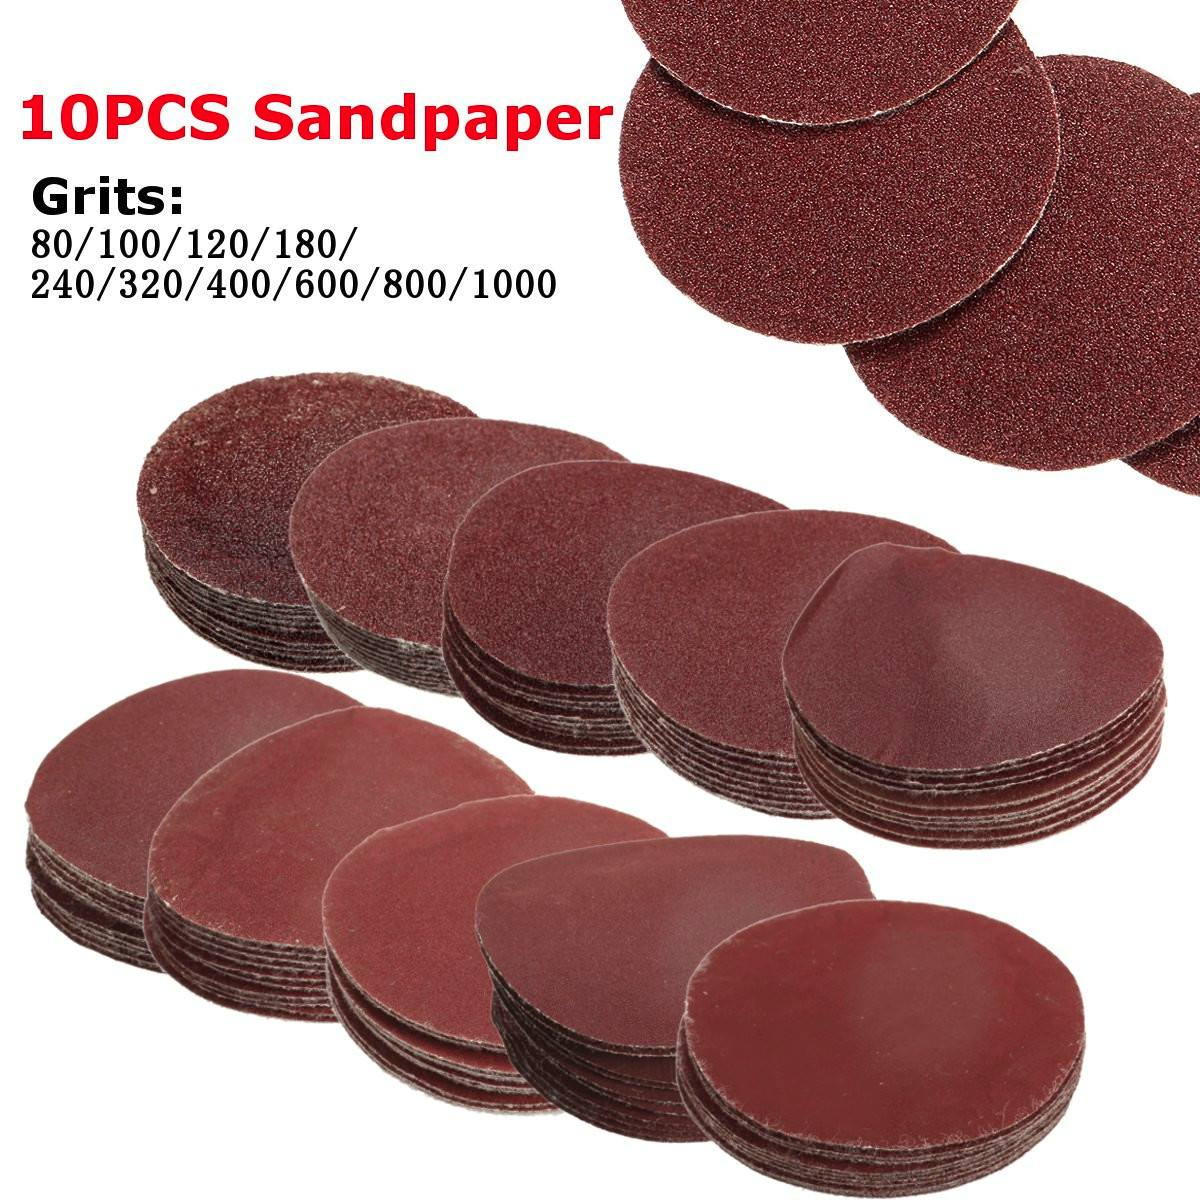 10Pcs/Set 80-1000 Grits 2inch 50mm Polishing Pad Sander Paper Sandpaper Sanding Discs Buffing Wheel Loop Sanding